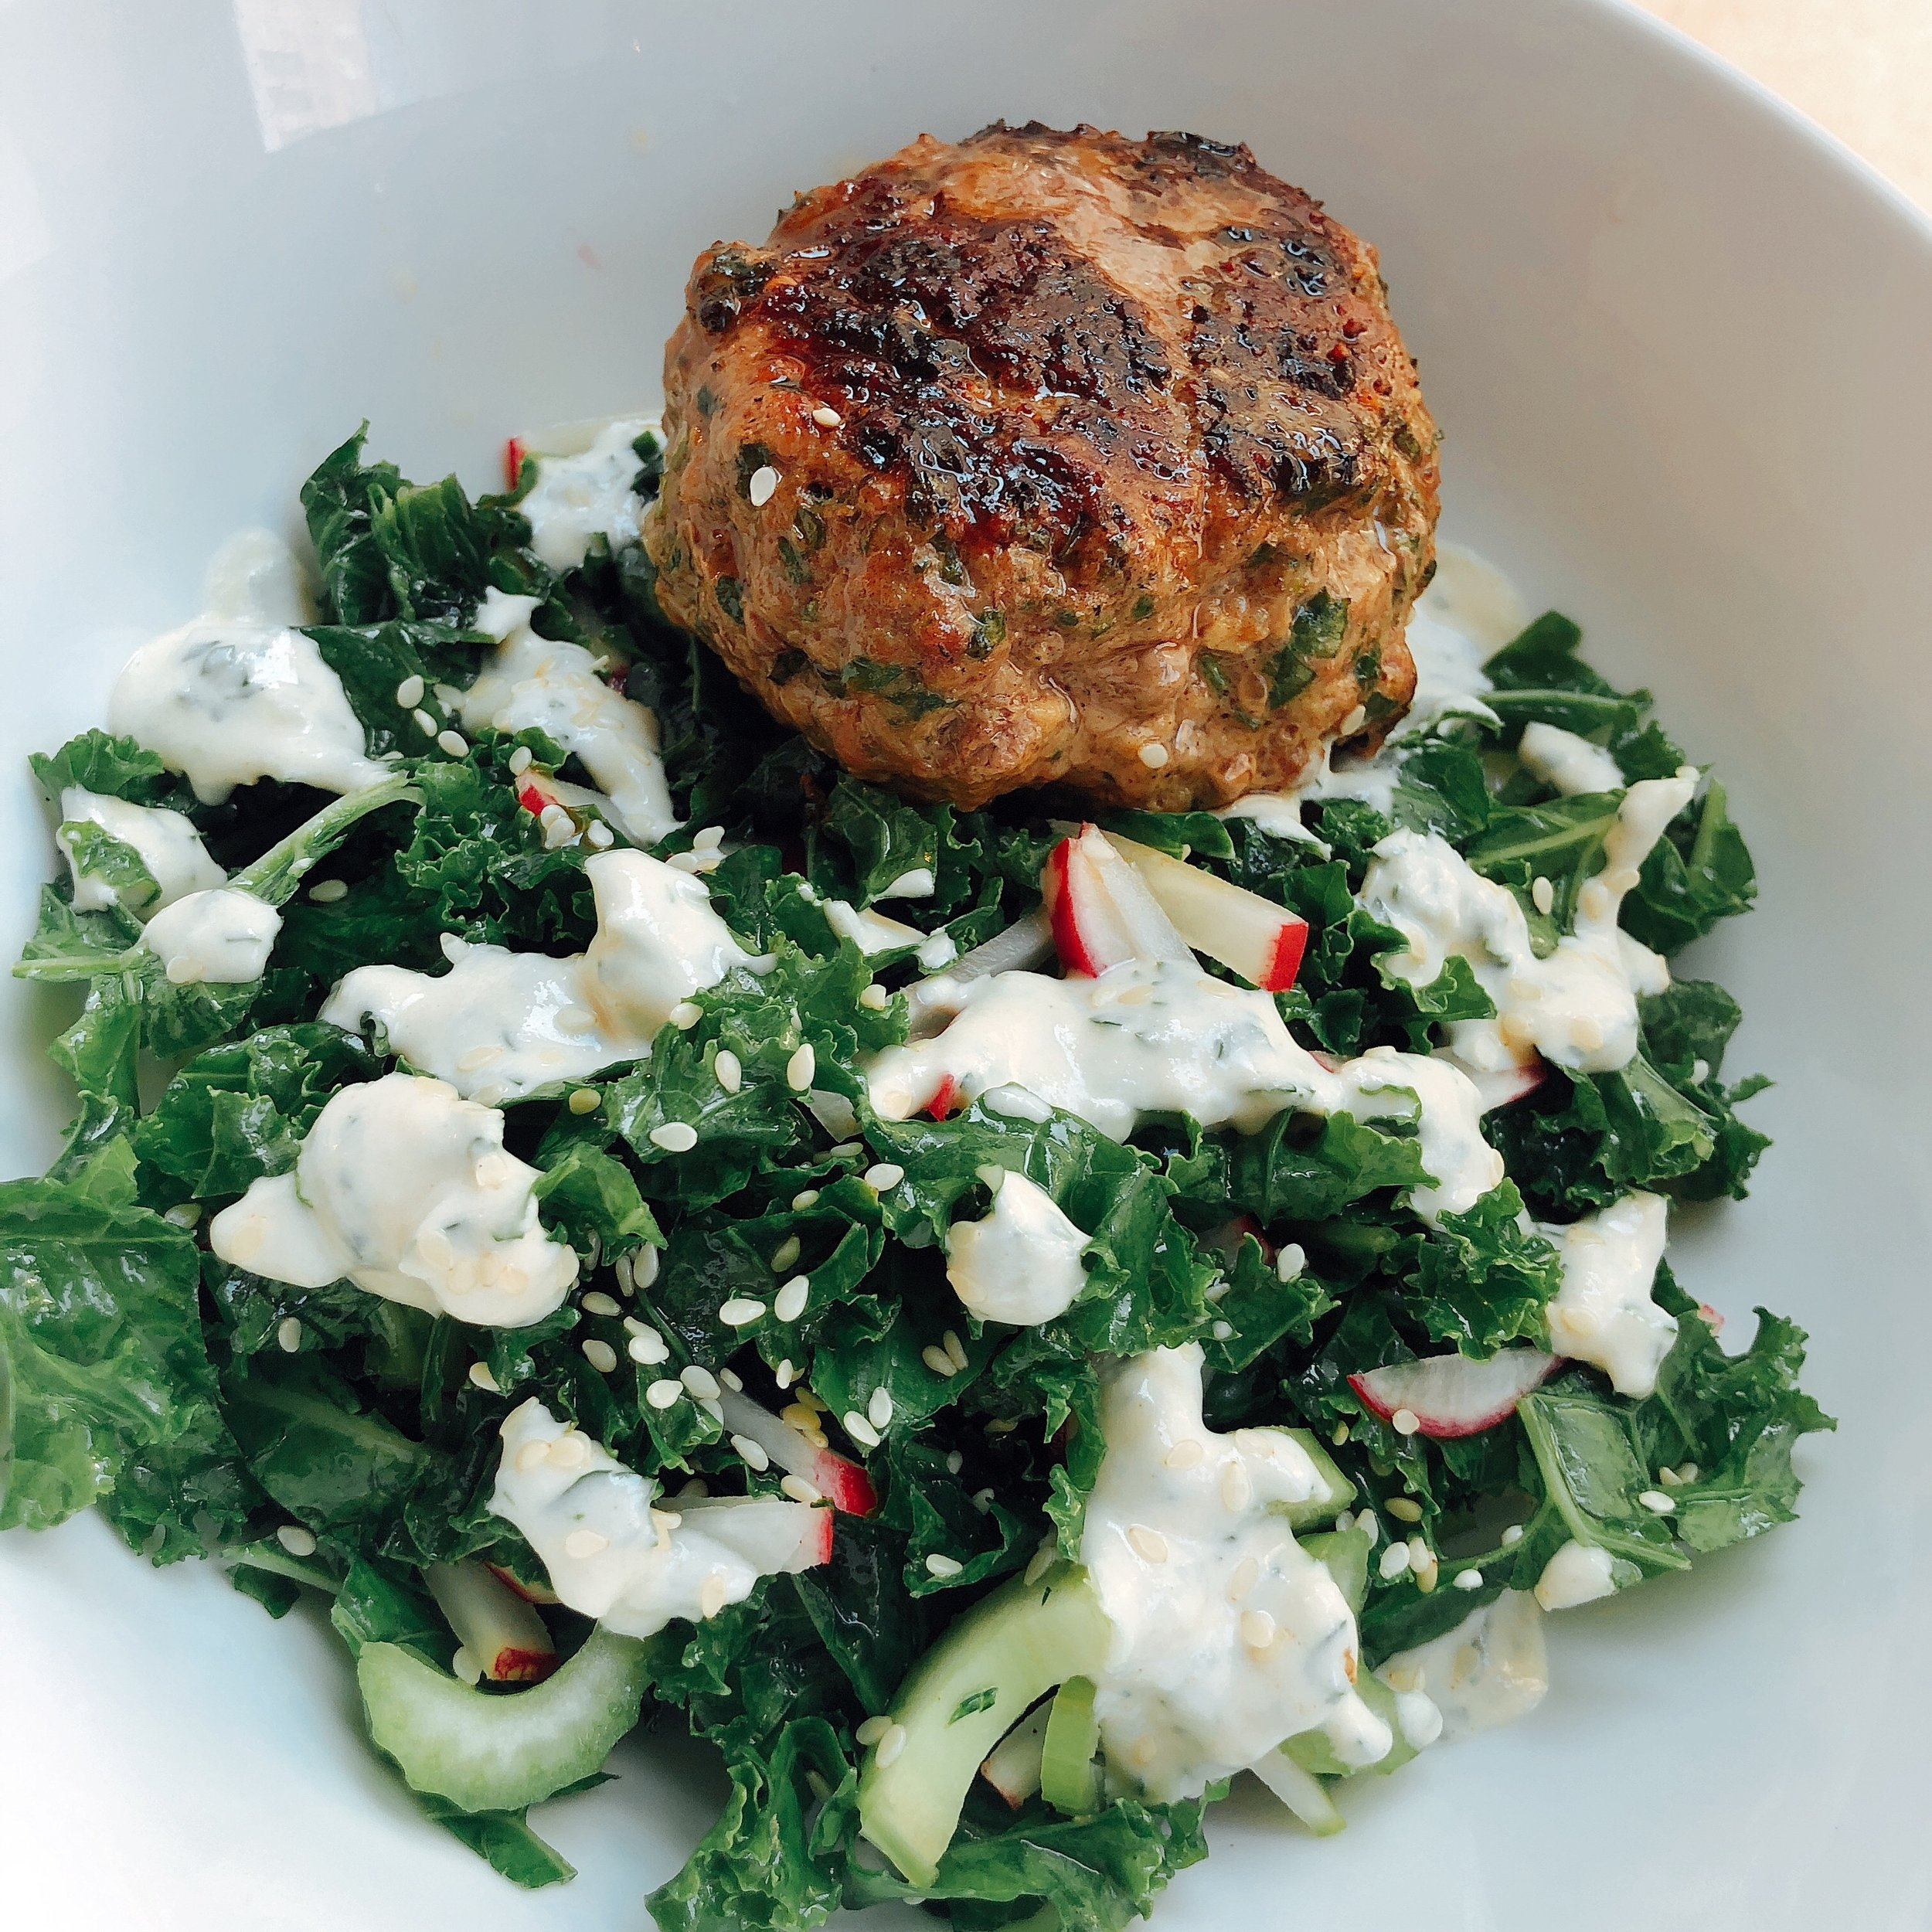 Herb Loaded Burger over Salad